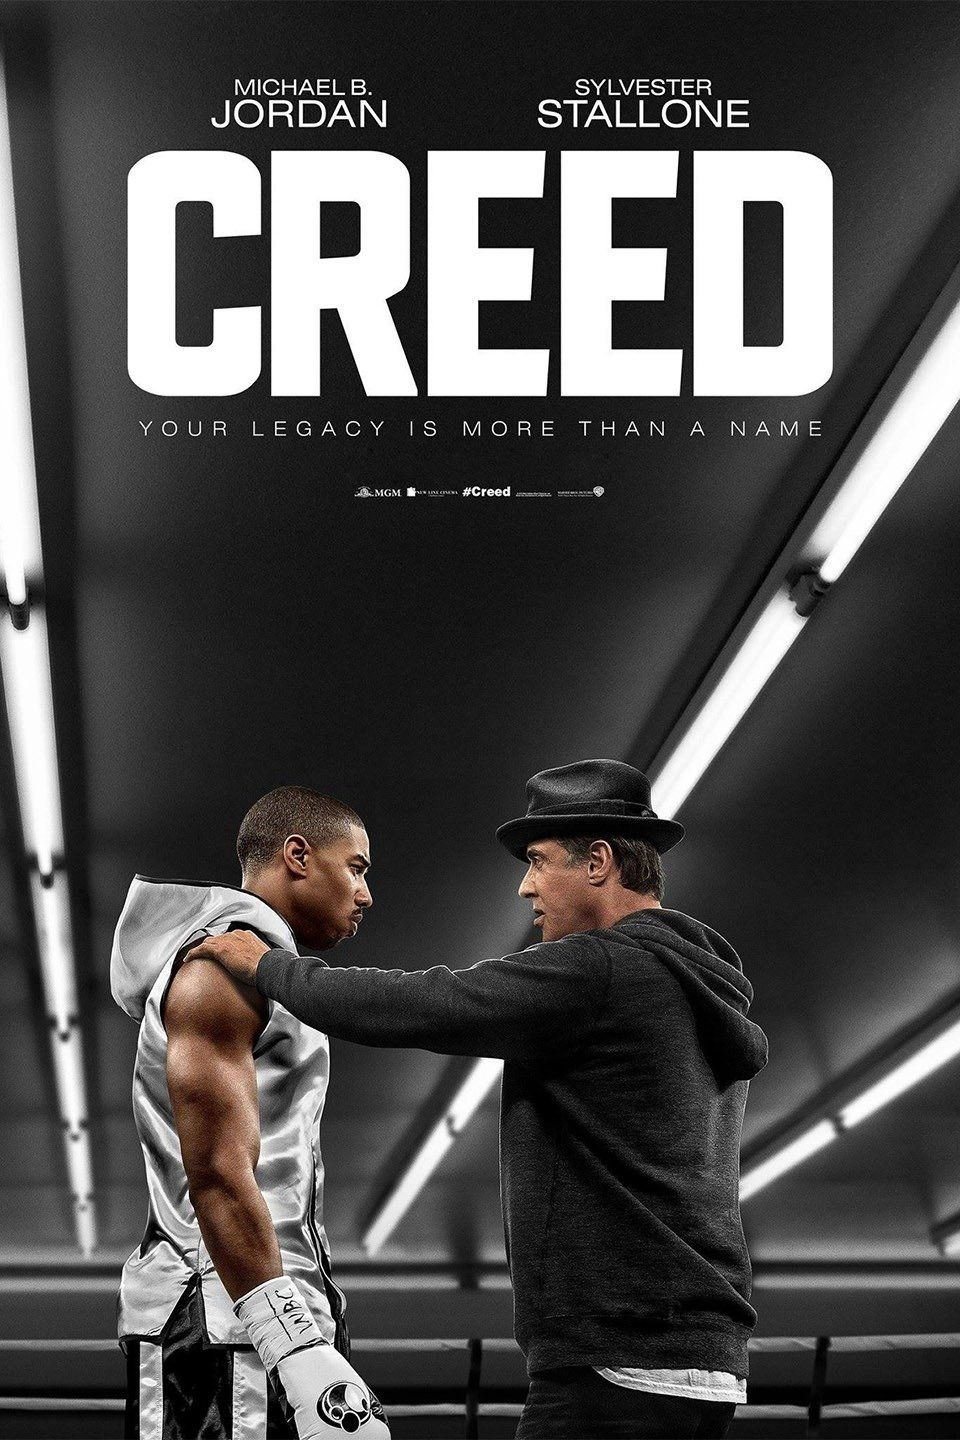 Creed 2015 adonis johnson never knew his famous